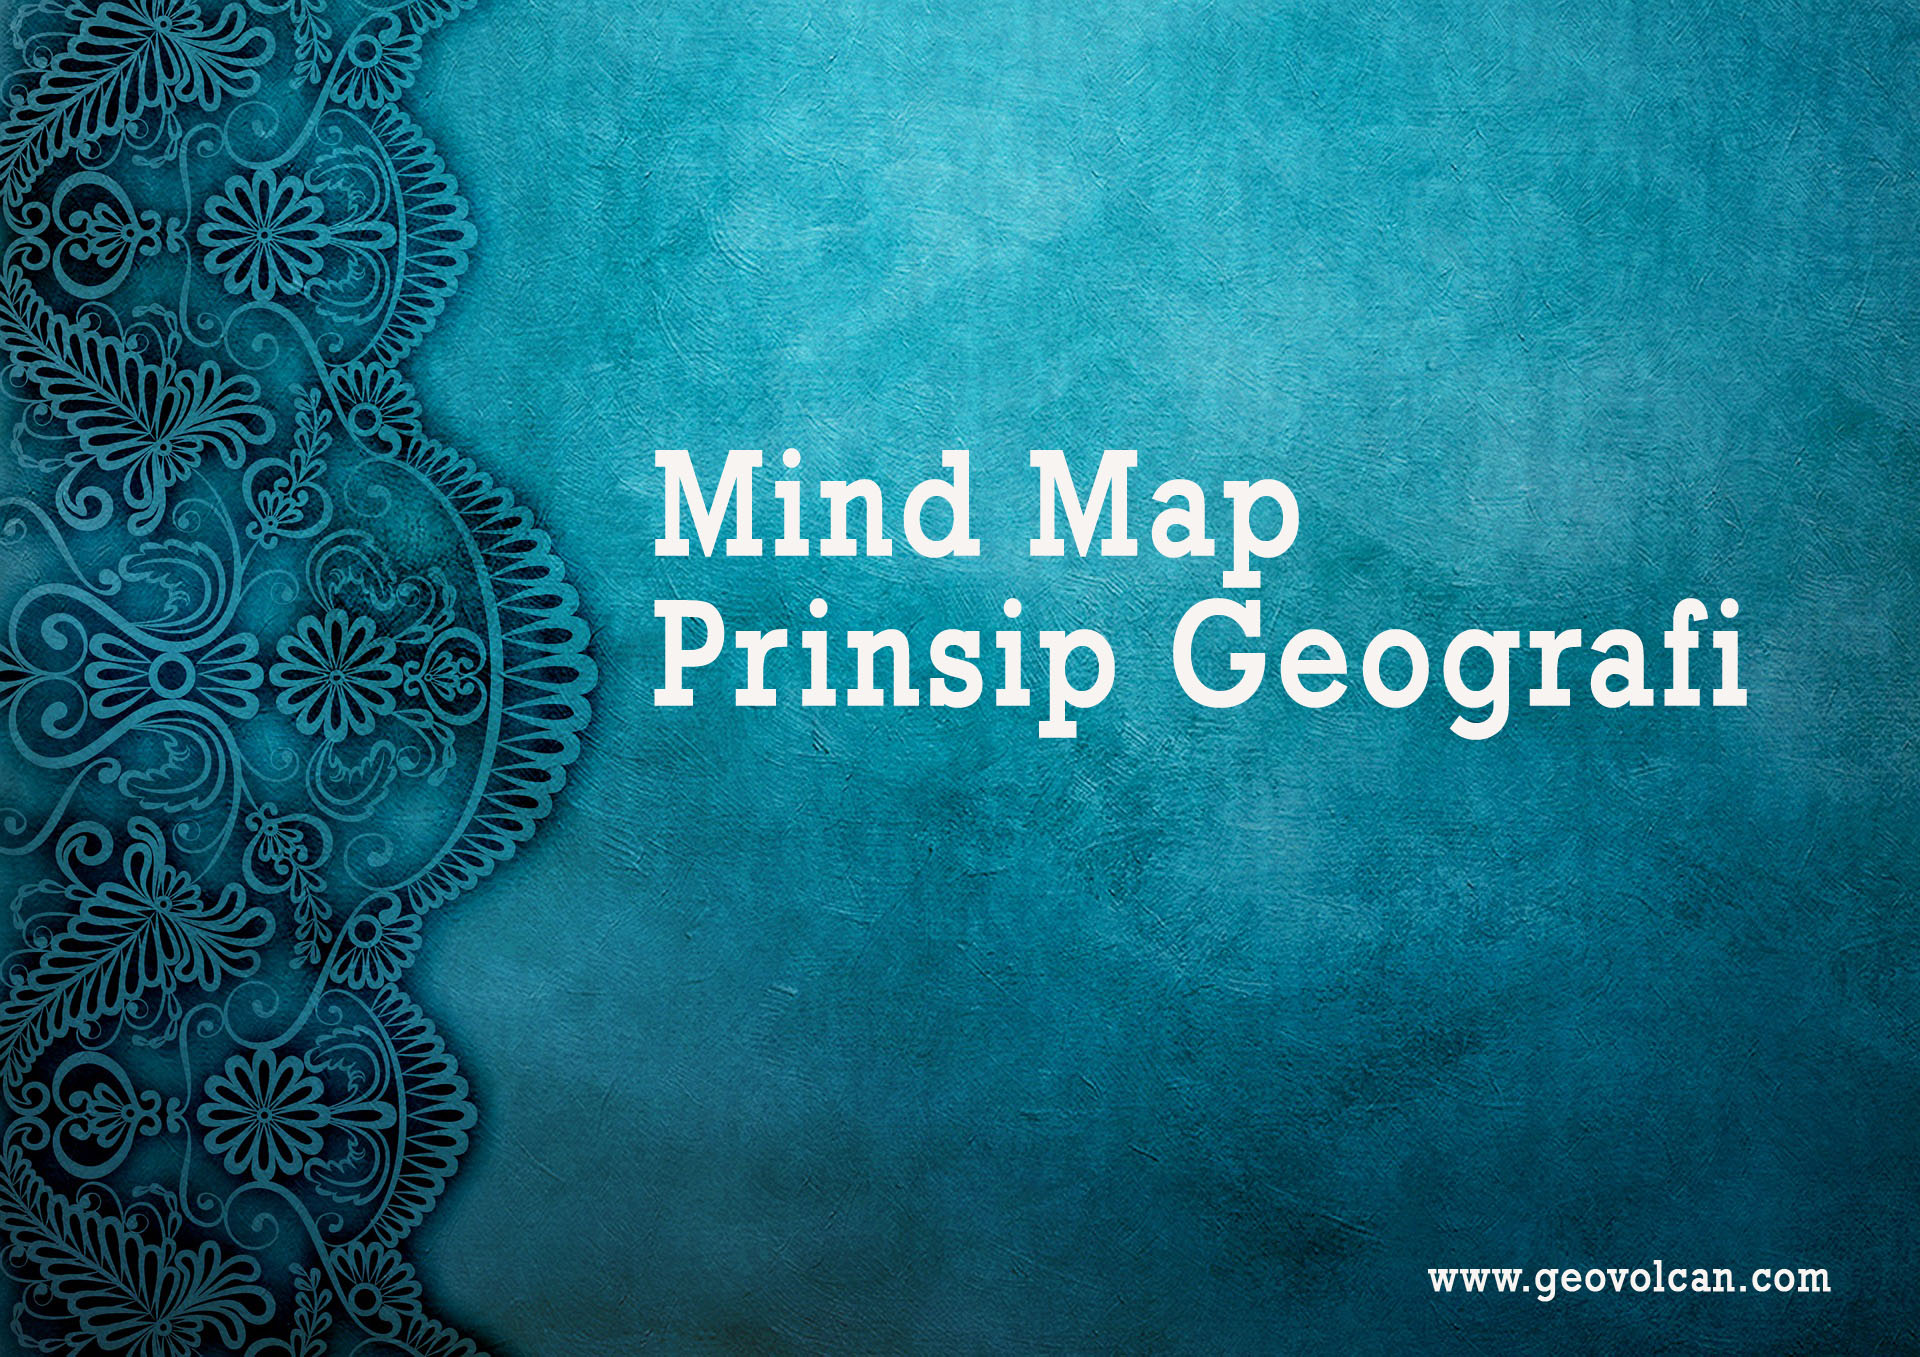 Mind Map Prinsip Geografi